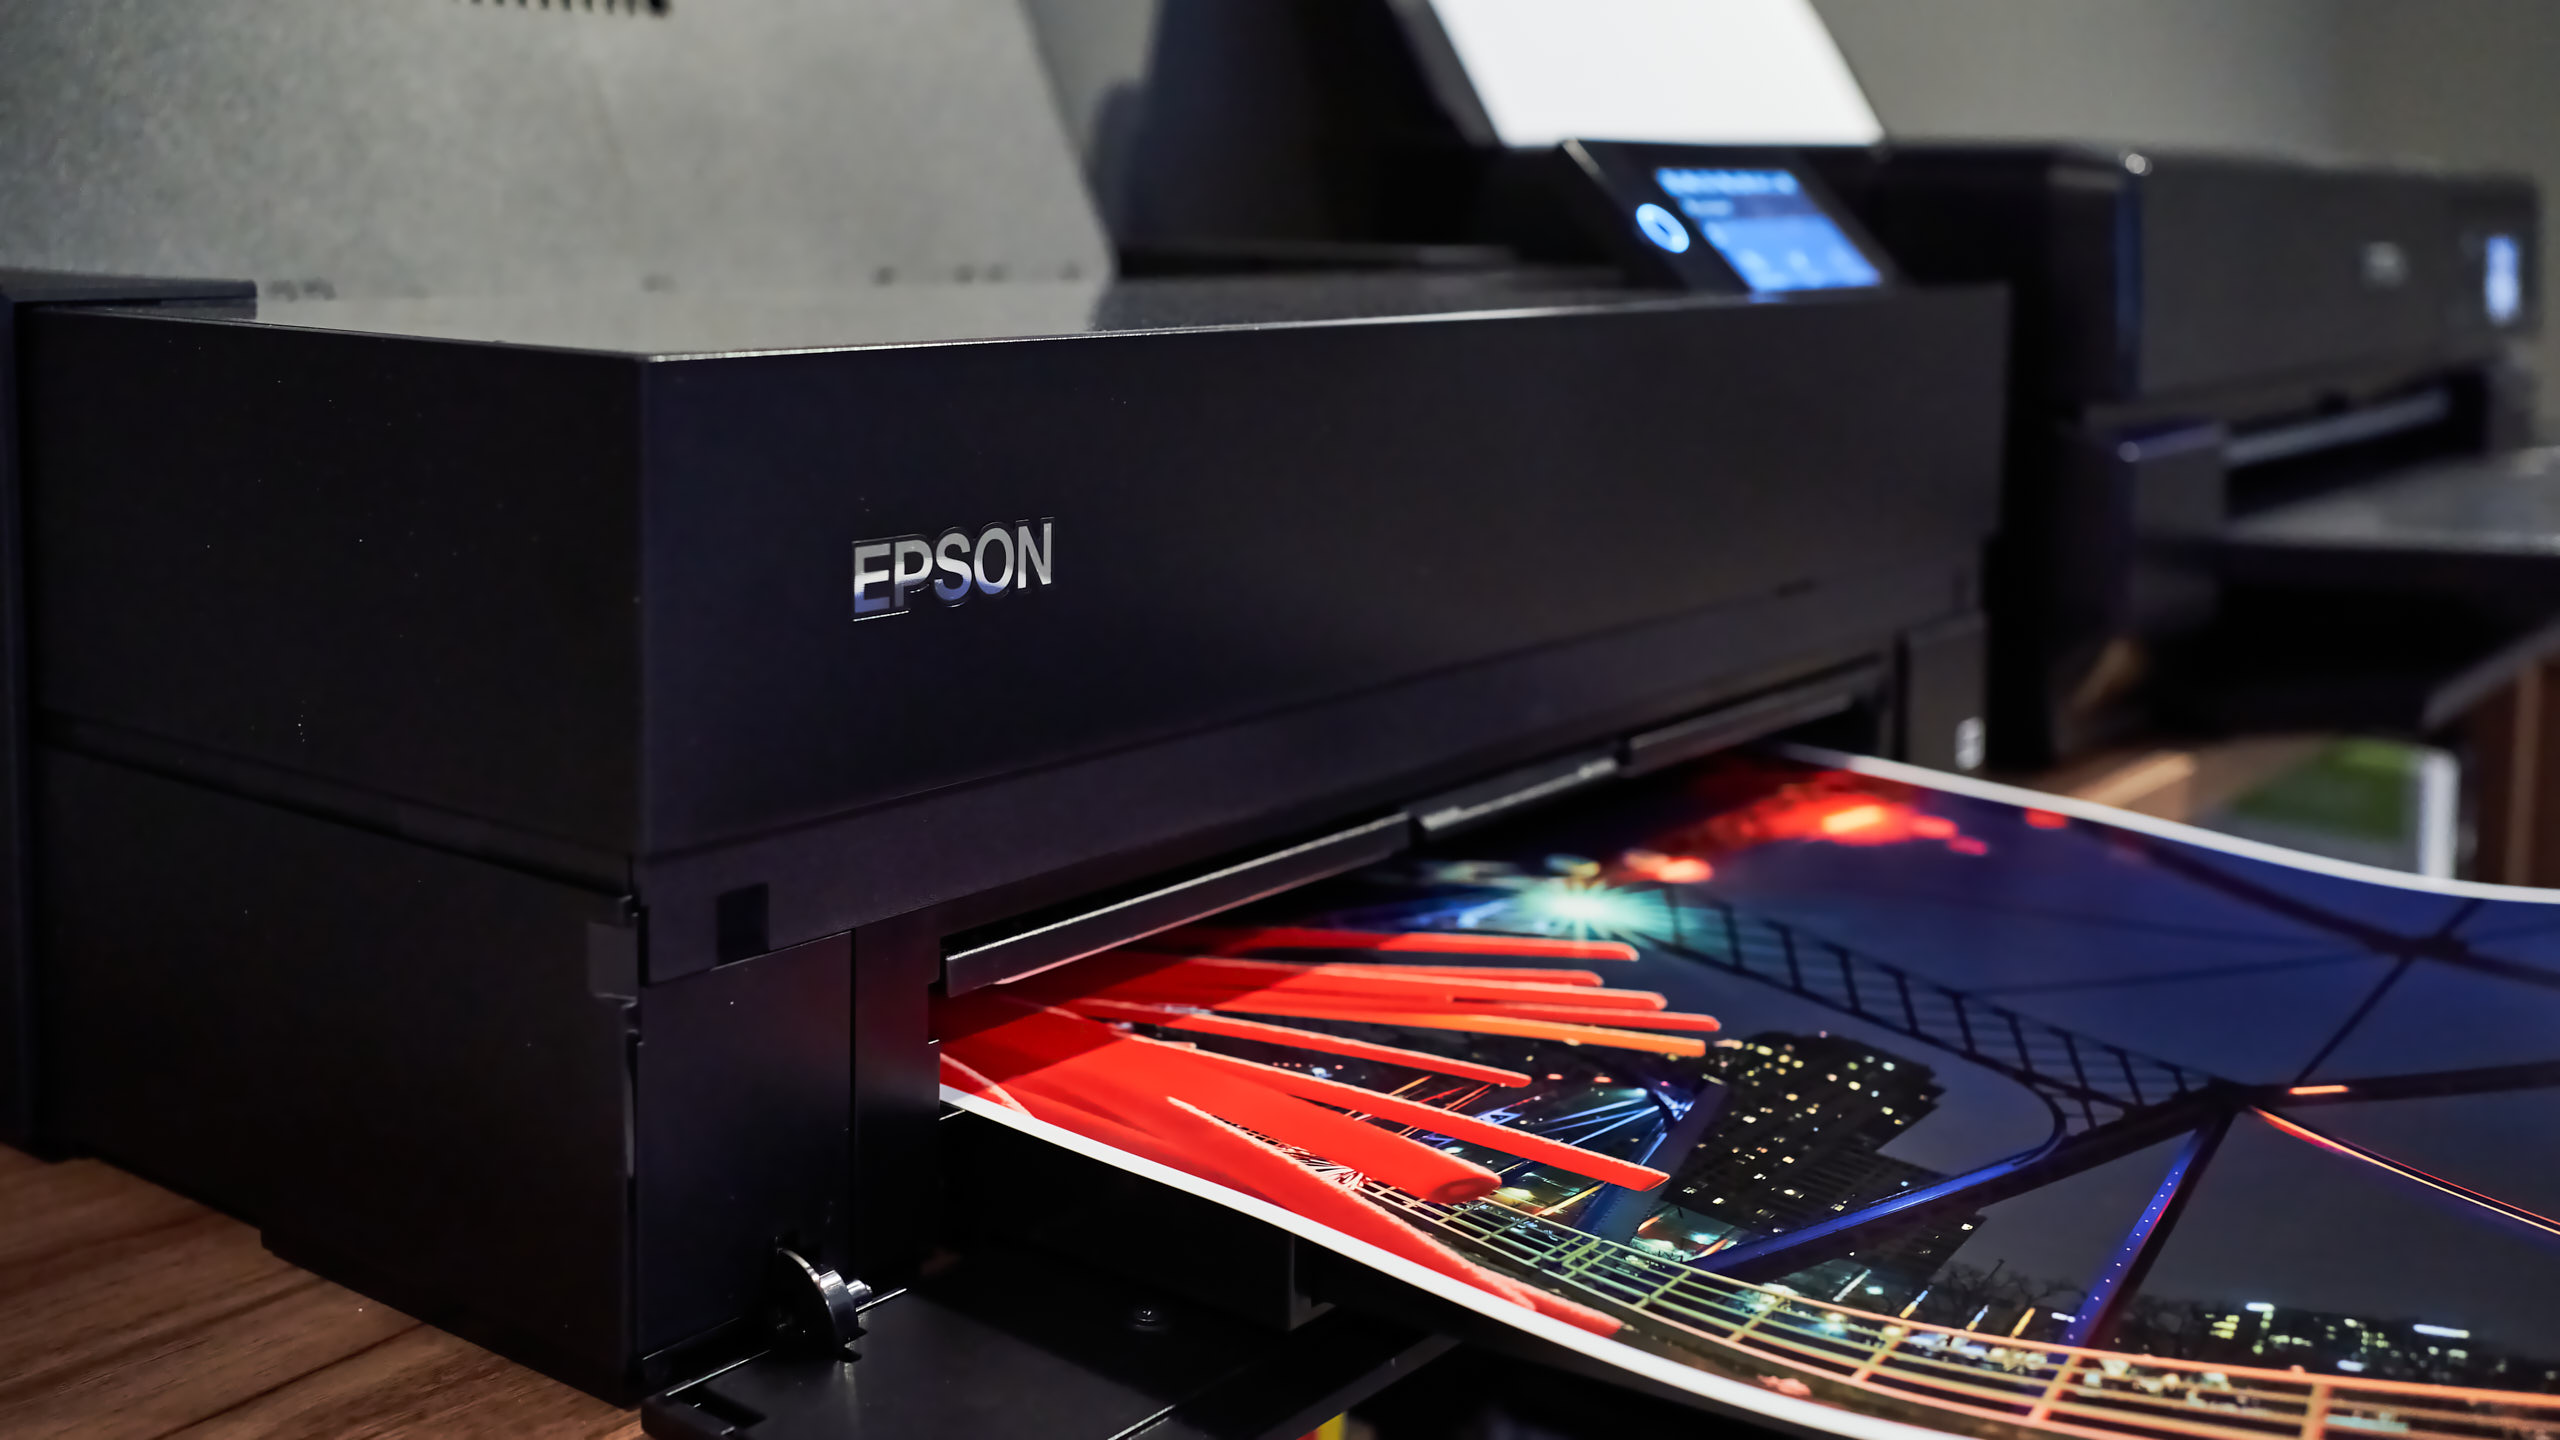 Epson SureColor P900 builds upon legacy, offering speed and pro-grade quality | Photofocus